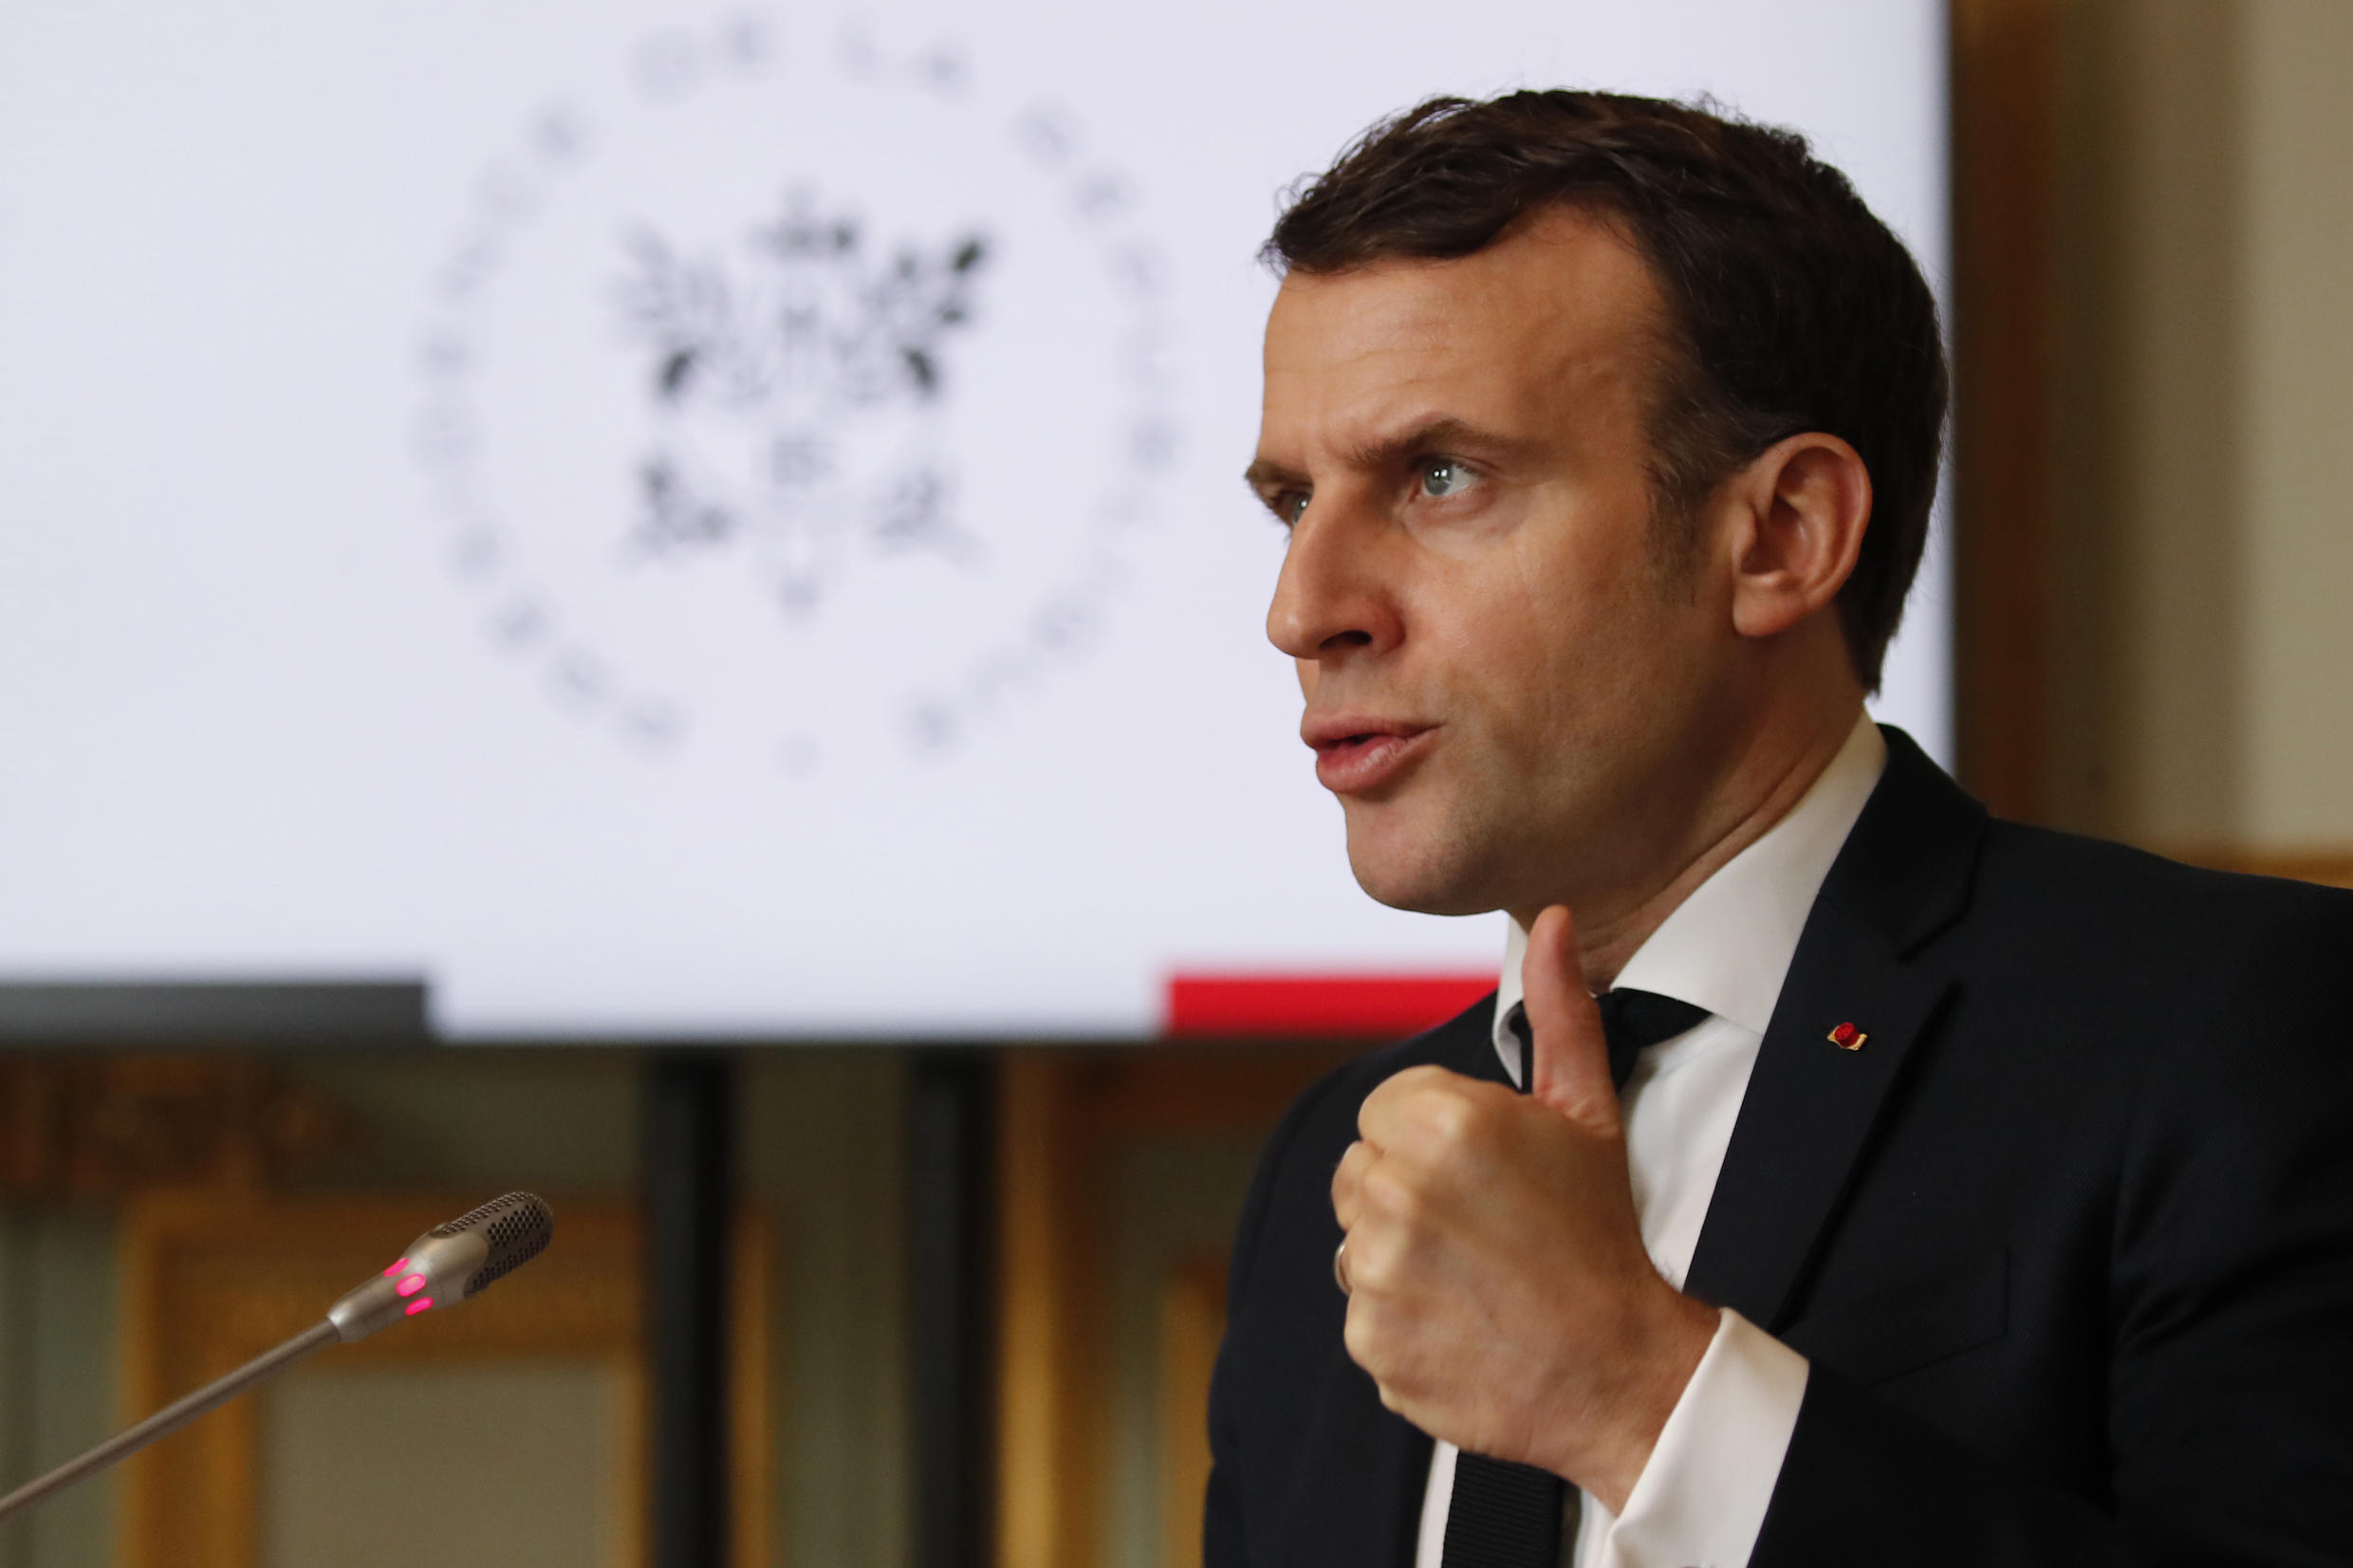 Macron, pictured speaking to the G5 Sahel summit via video link, is under pressure at home to reduce France's anti-jihadist mission